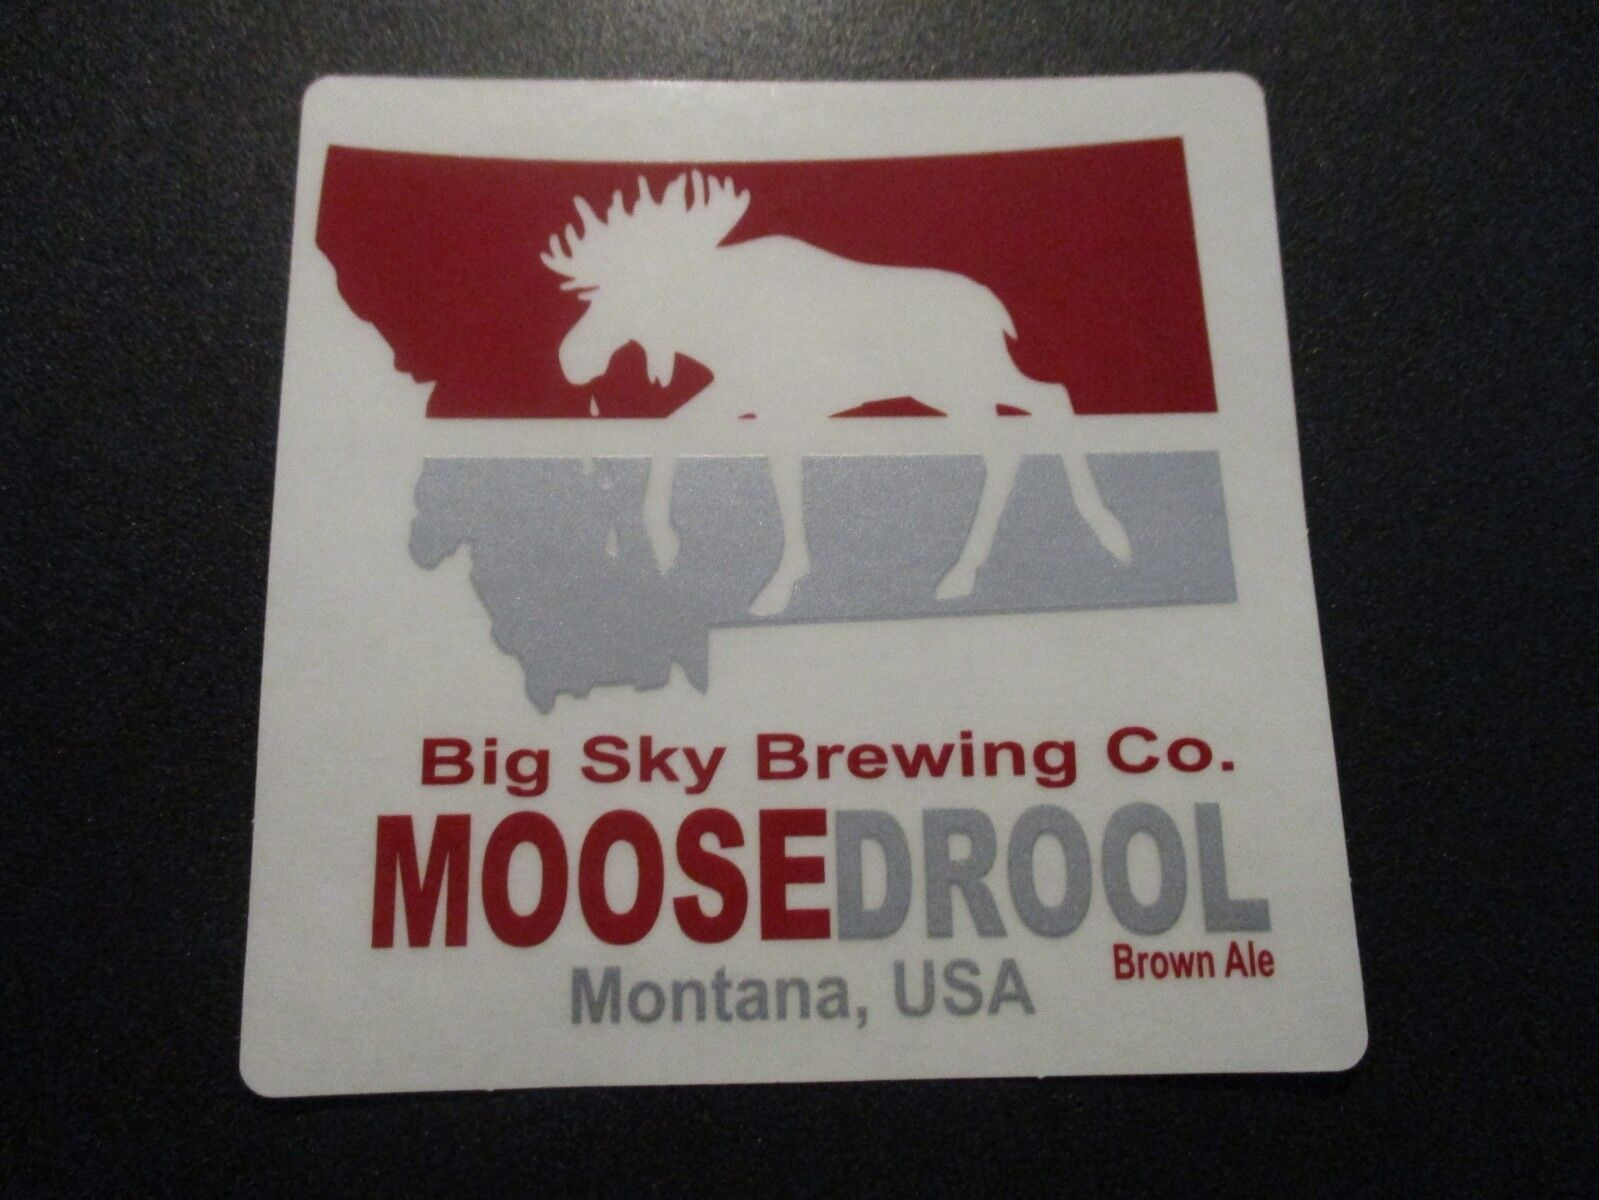 BIG SKY BREWING CO Moose Drool hold Montana blu STICKER decal craft beer brewery